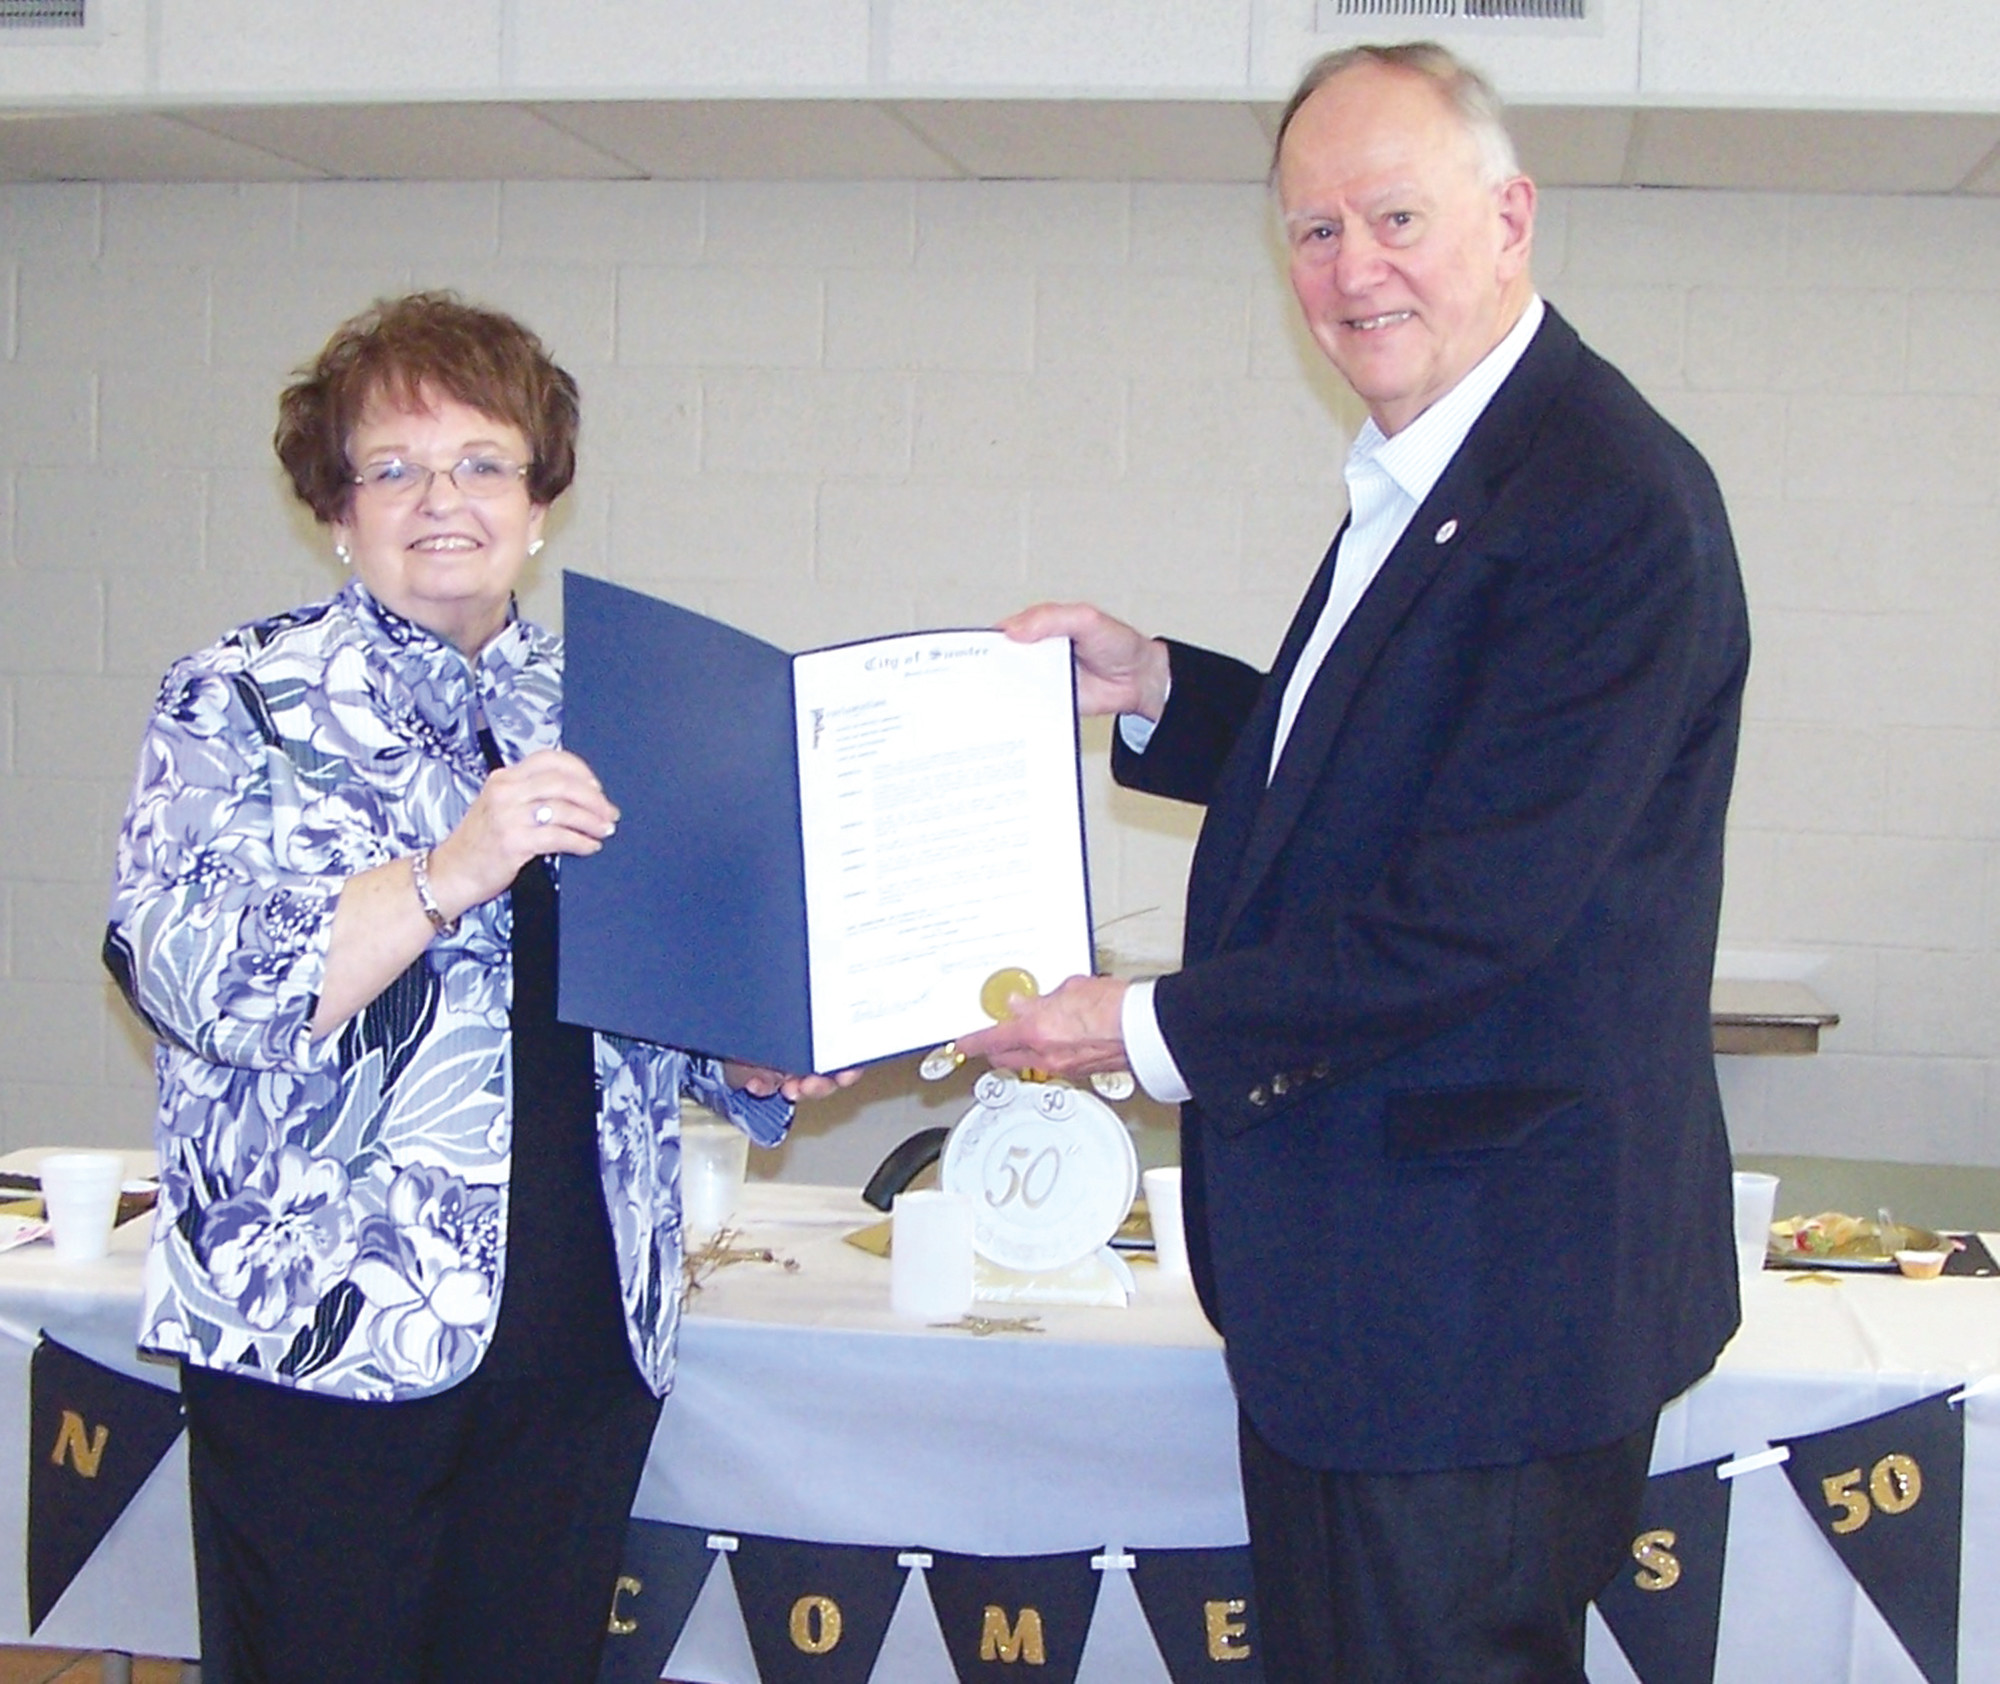 Arlene Janis, president of the Sumter Newcomers Club, accepts the official proclamation of Feb. 28 as Sumter Newcomers Club Day from Sumter Mayor Joseph T.  McElveen. McElveen made the proclamation at the club's breakfast at the Spectrum senior center on Friday, Feb. 9.